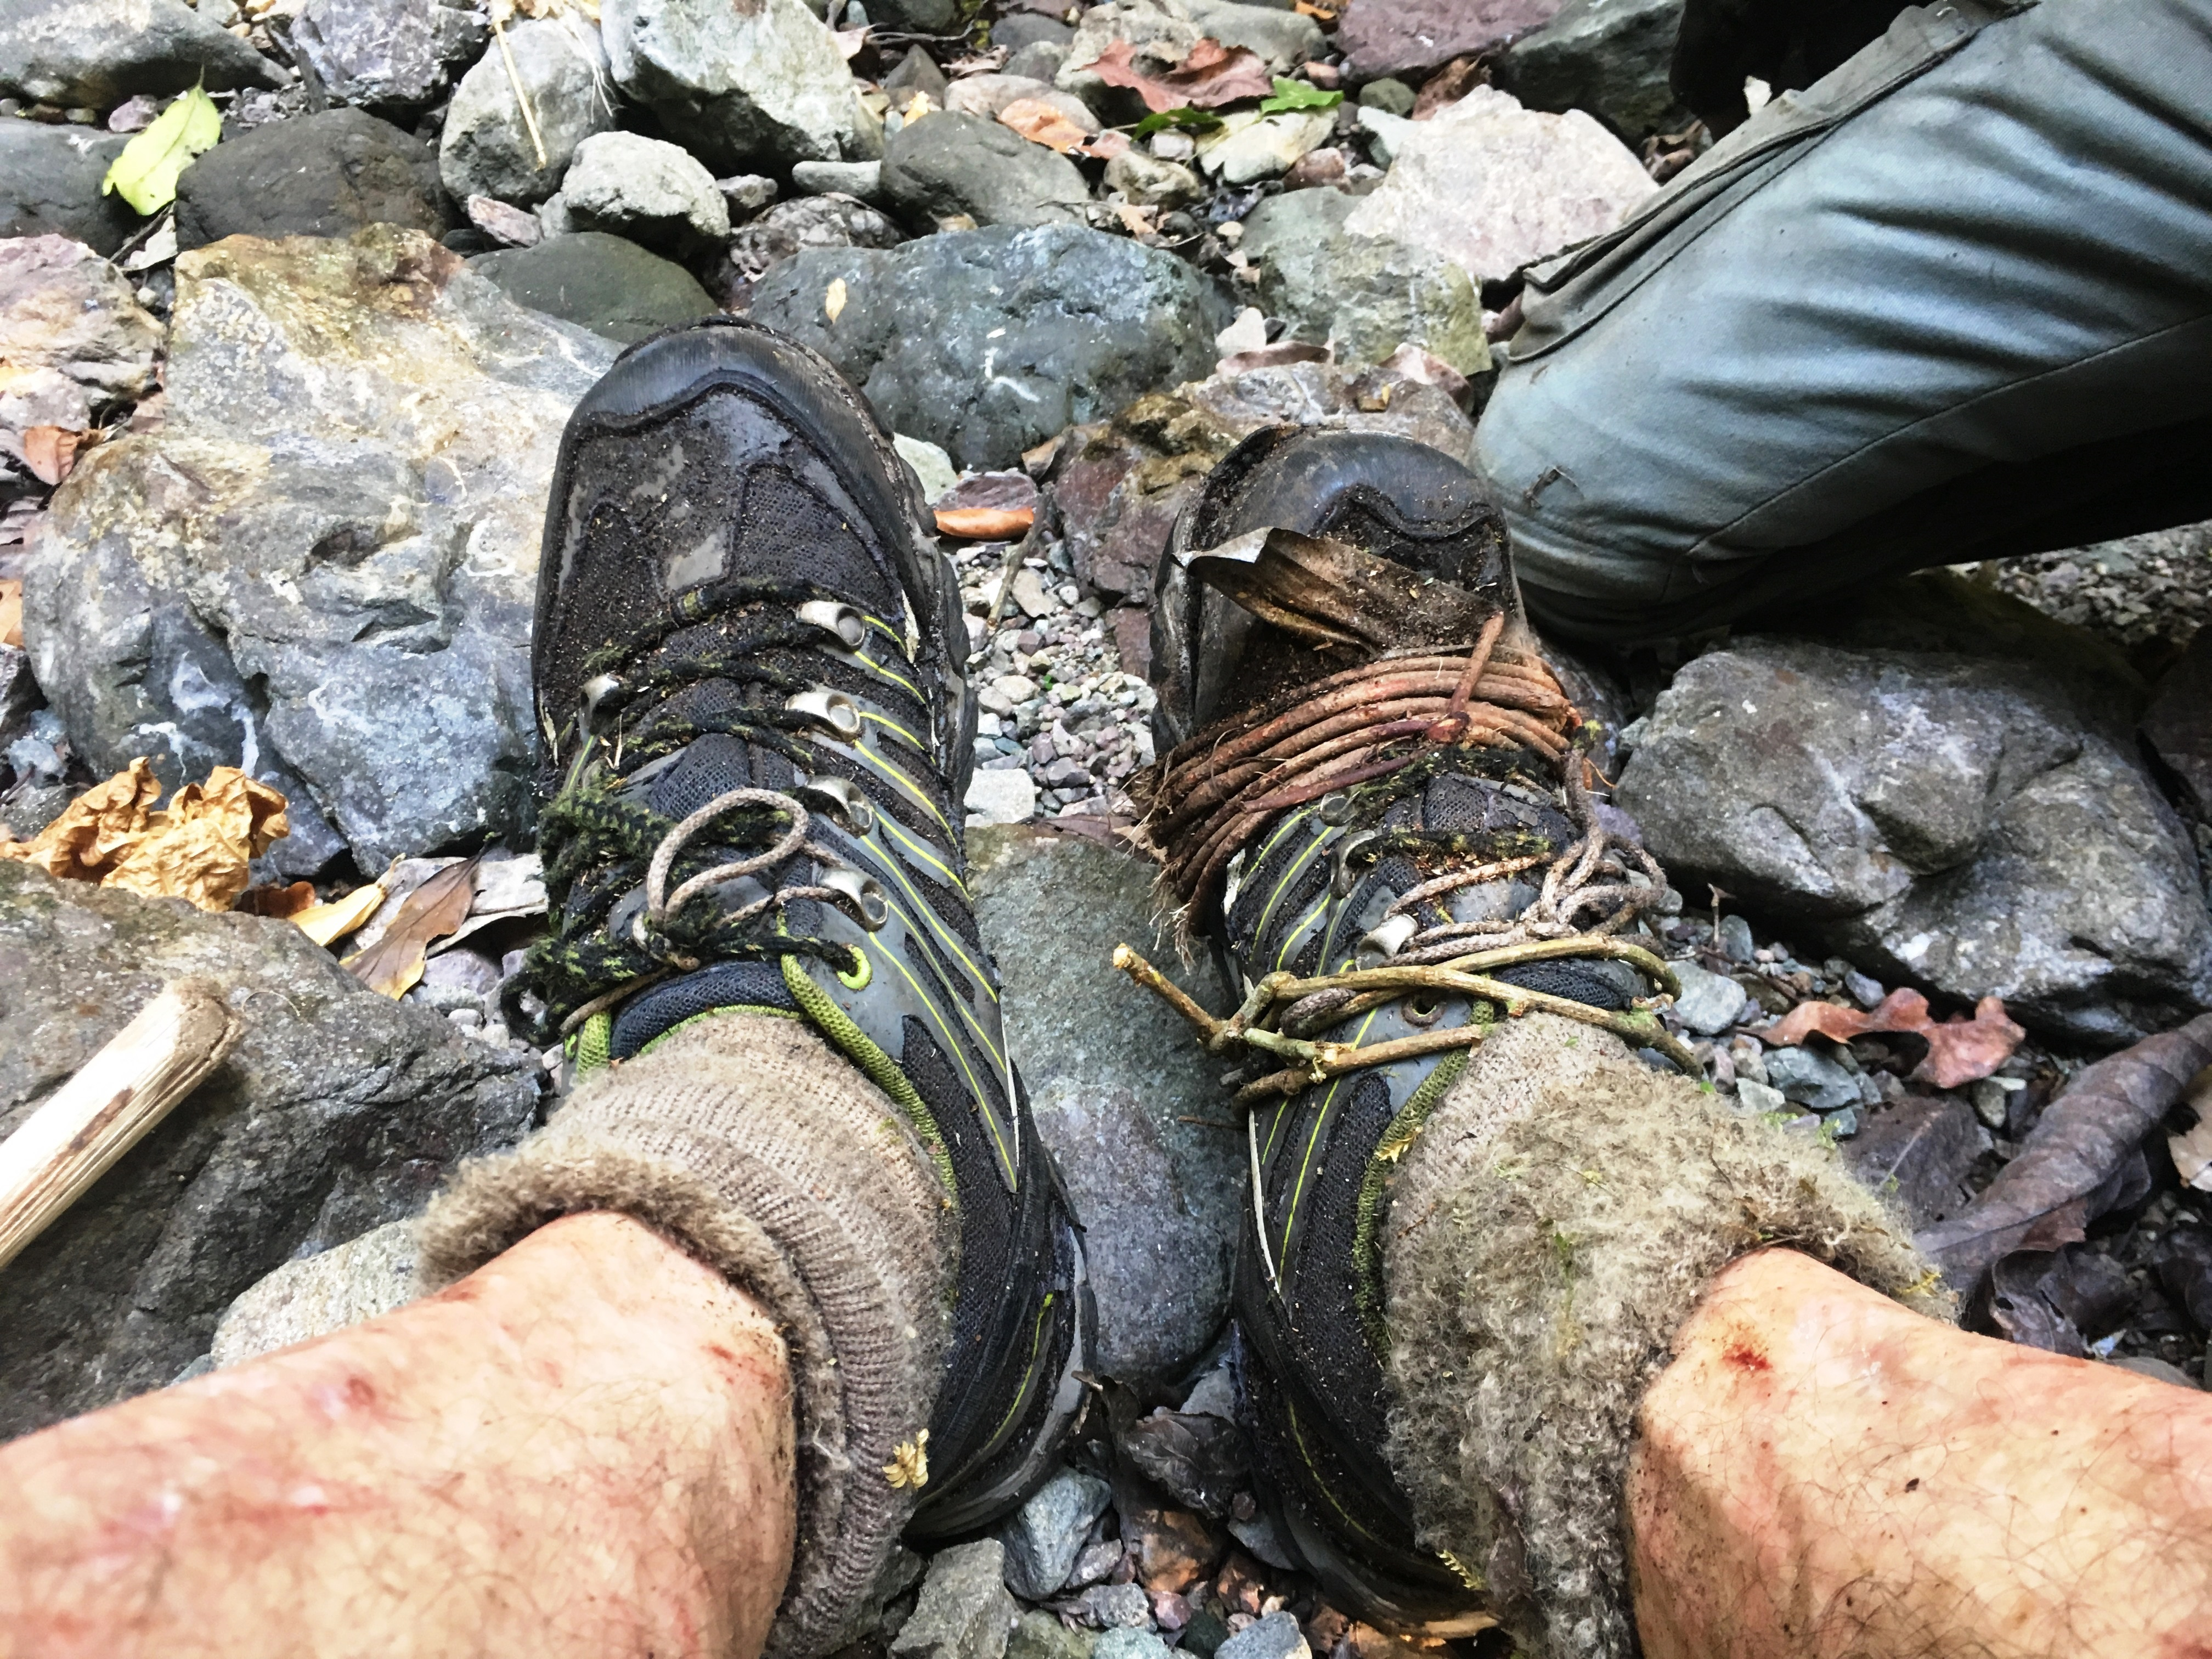 Gunung-Sabatai-Jungle-survival-–-tying-boots-with-rattan-vine-Nick-Hughes-September-2019